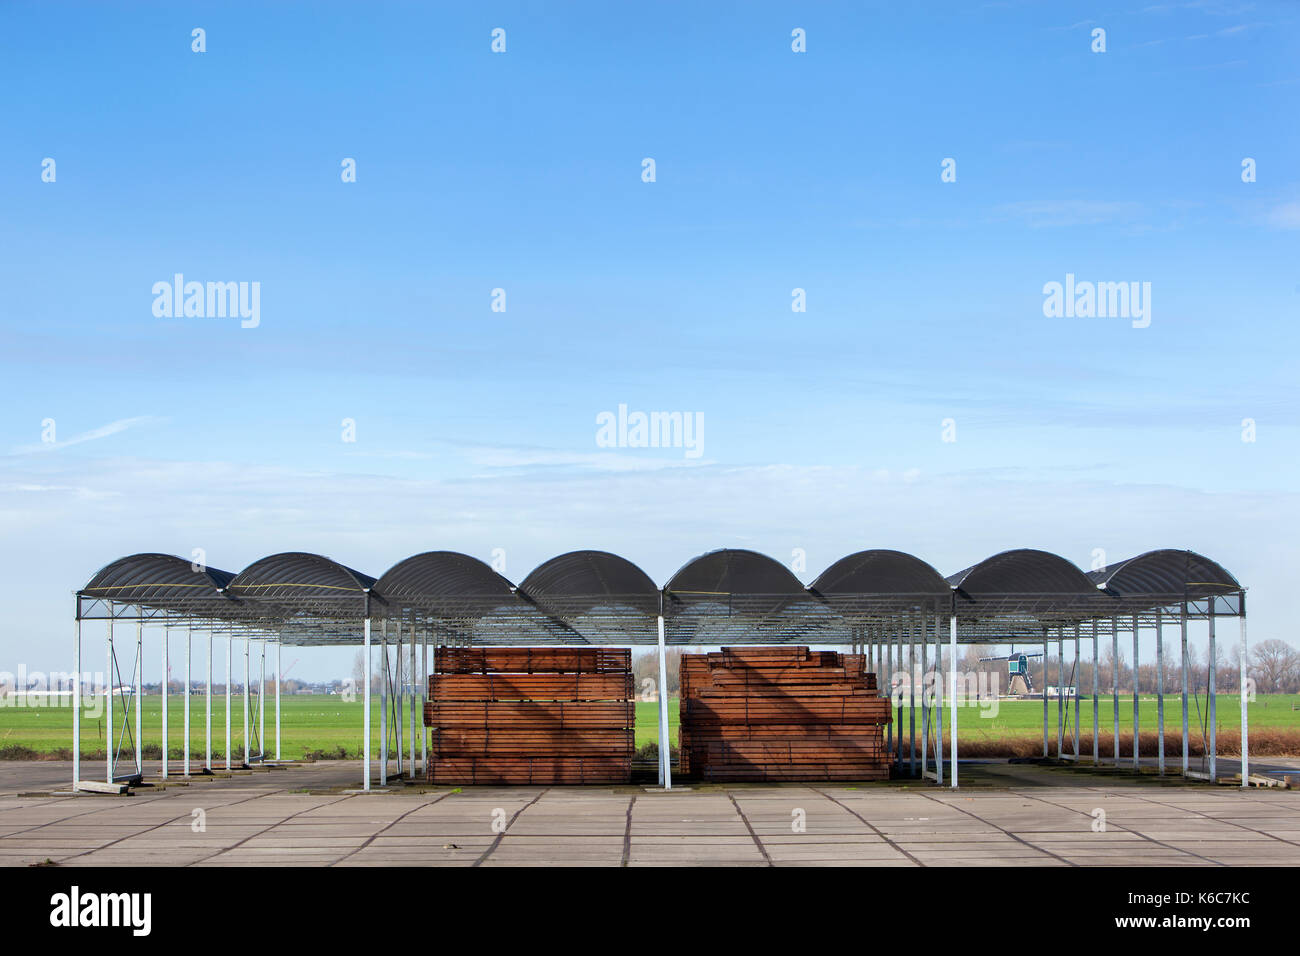 Outdoors industrial storage of piles hardwood under a roof - Stock Image